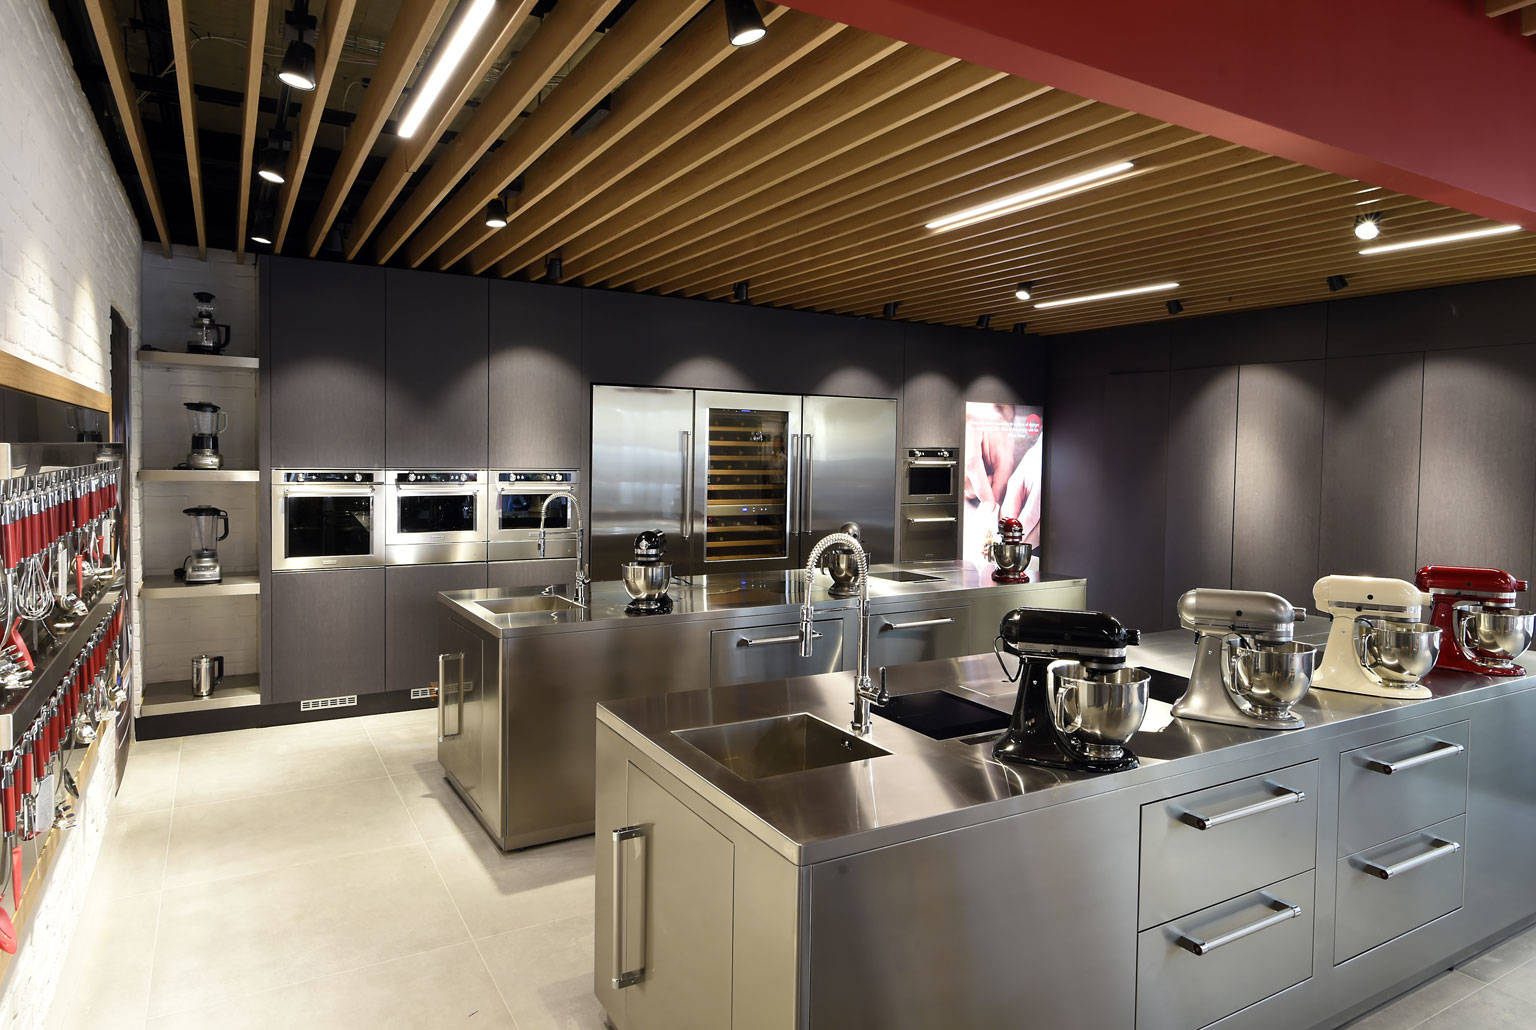 WELCOME TO THE KITCHENAID EXPERIENCE STORE AND SHOWROOM